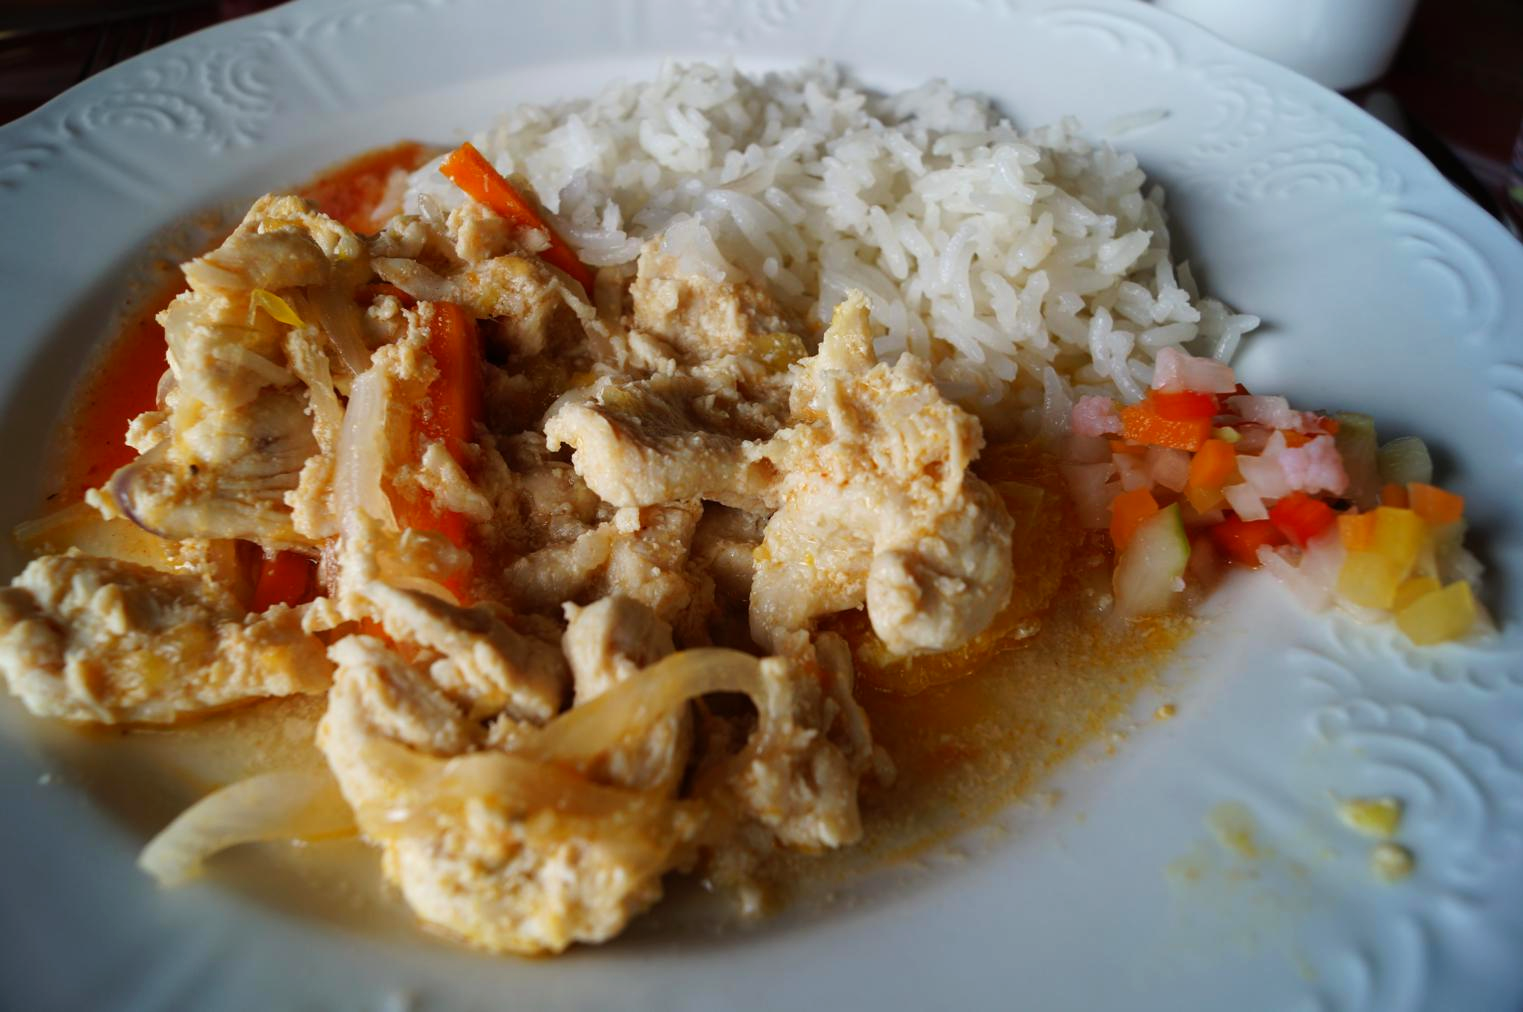 A lunch. Lemongrass chicken and rice with homemade hot sauce and pickled veggies.